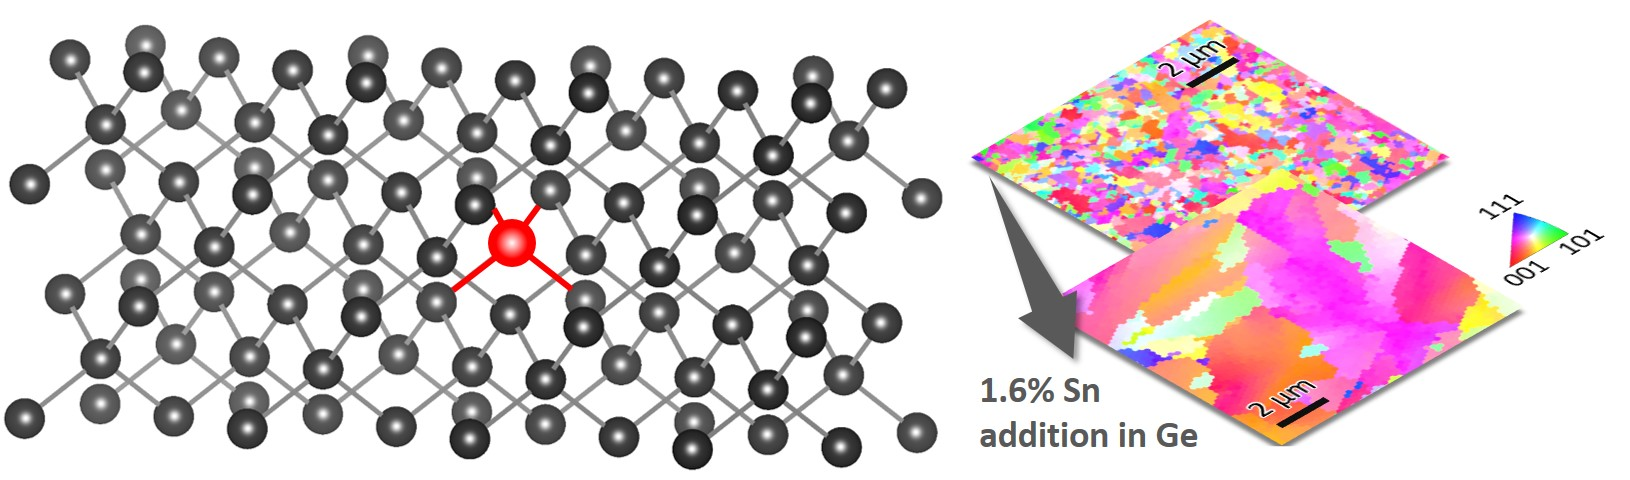 Dramatic effects of Sn addition on Ge crystallization